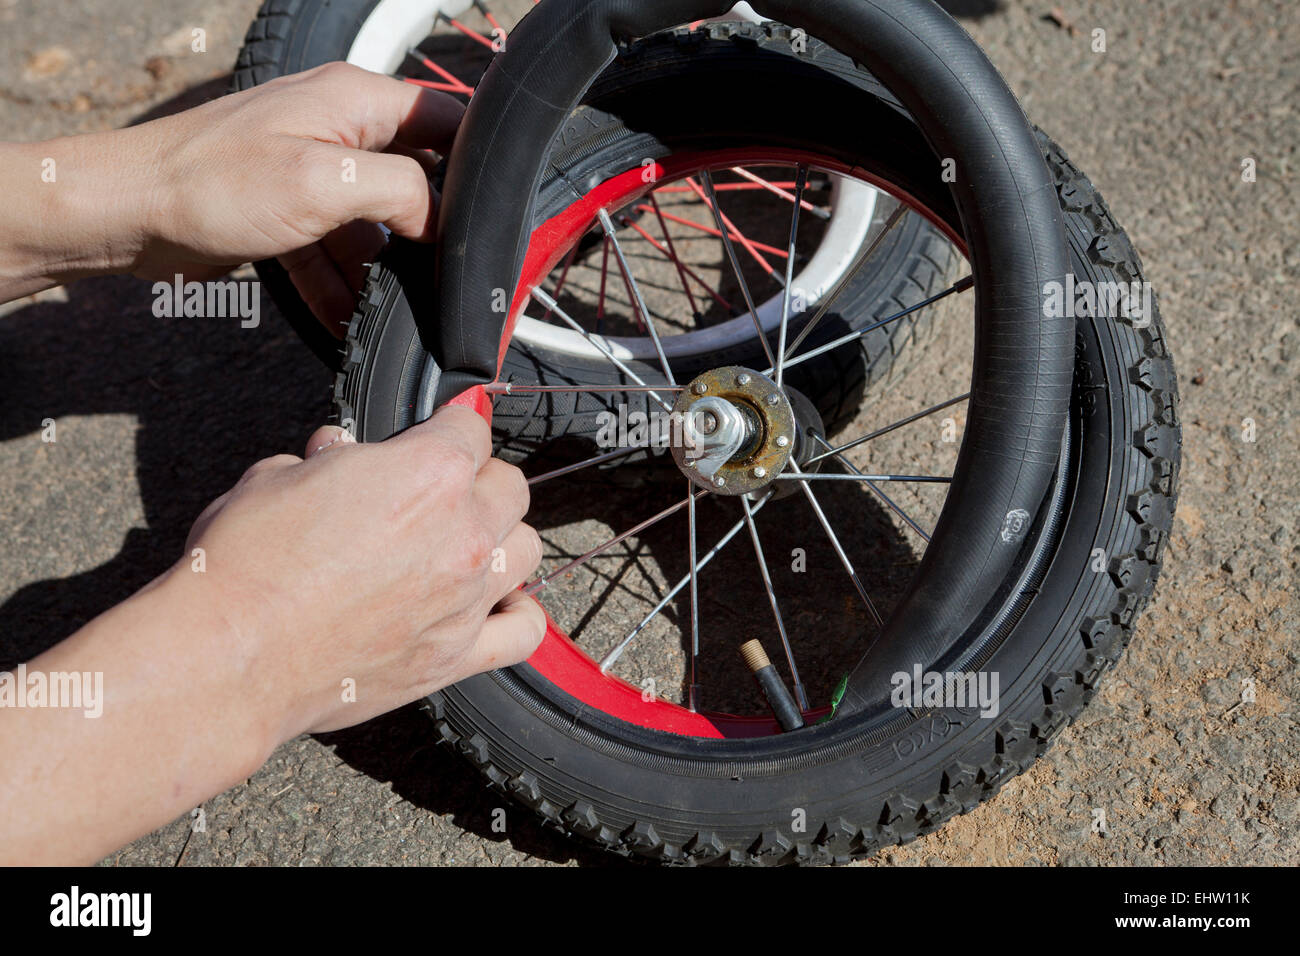 Man replacing inner tube on child's bicycle wheel - USA - Stock Image